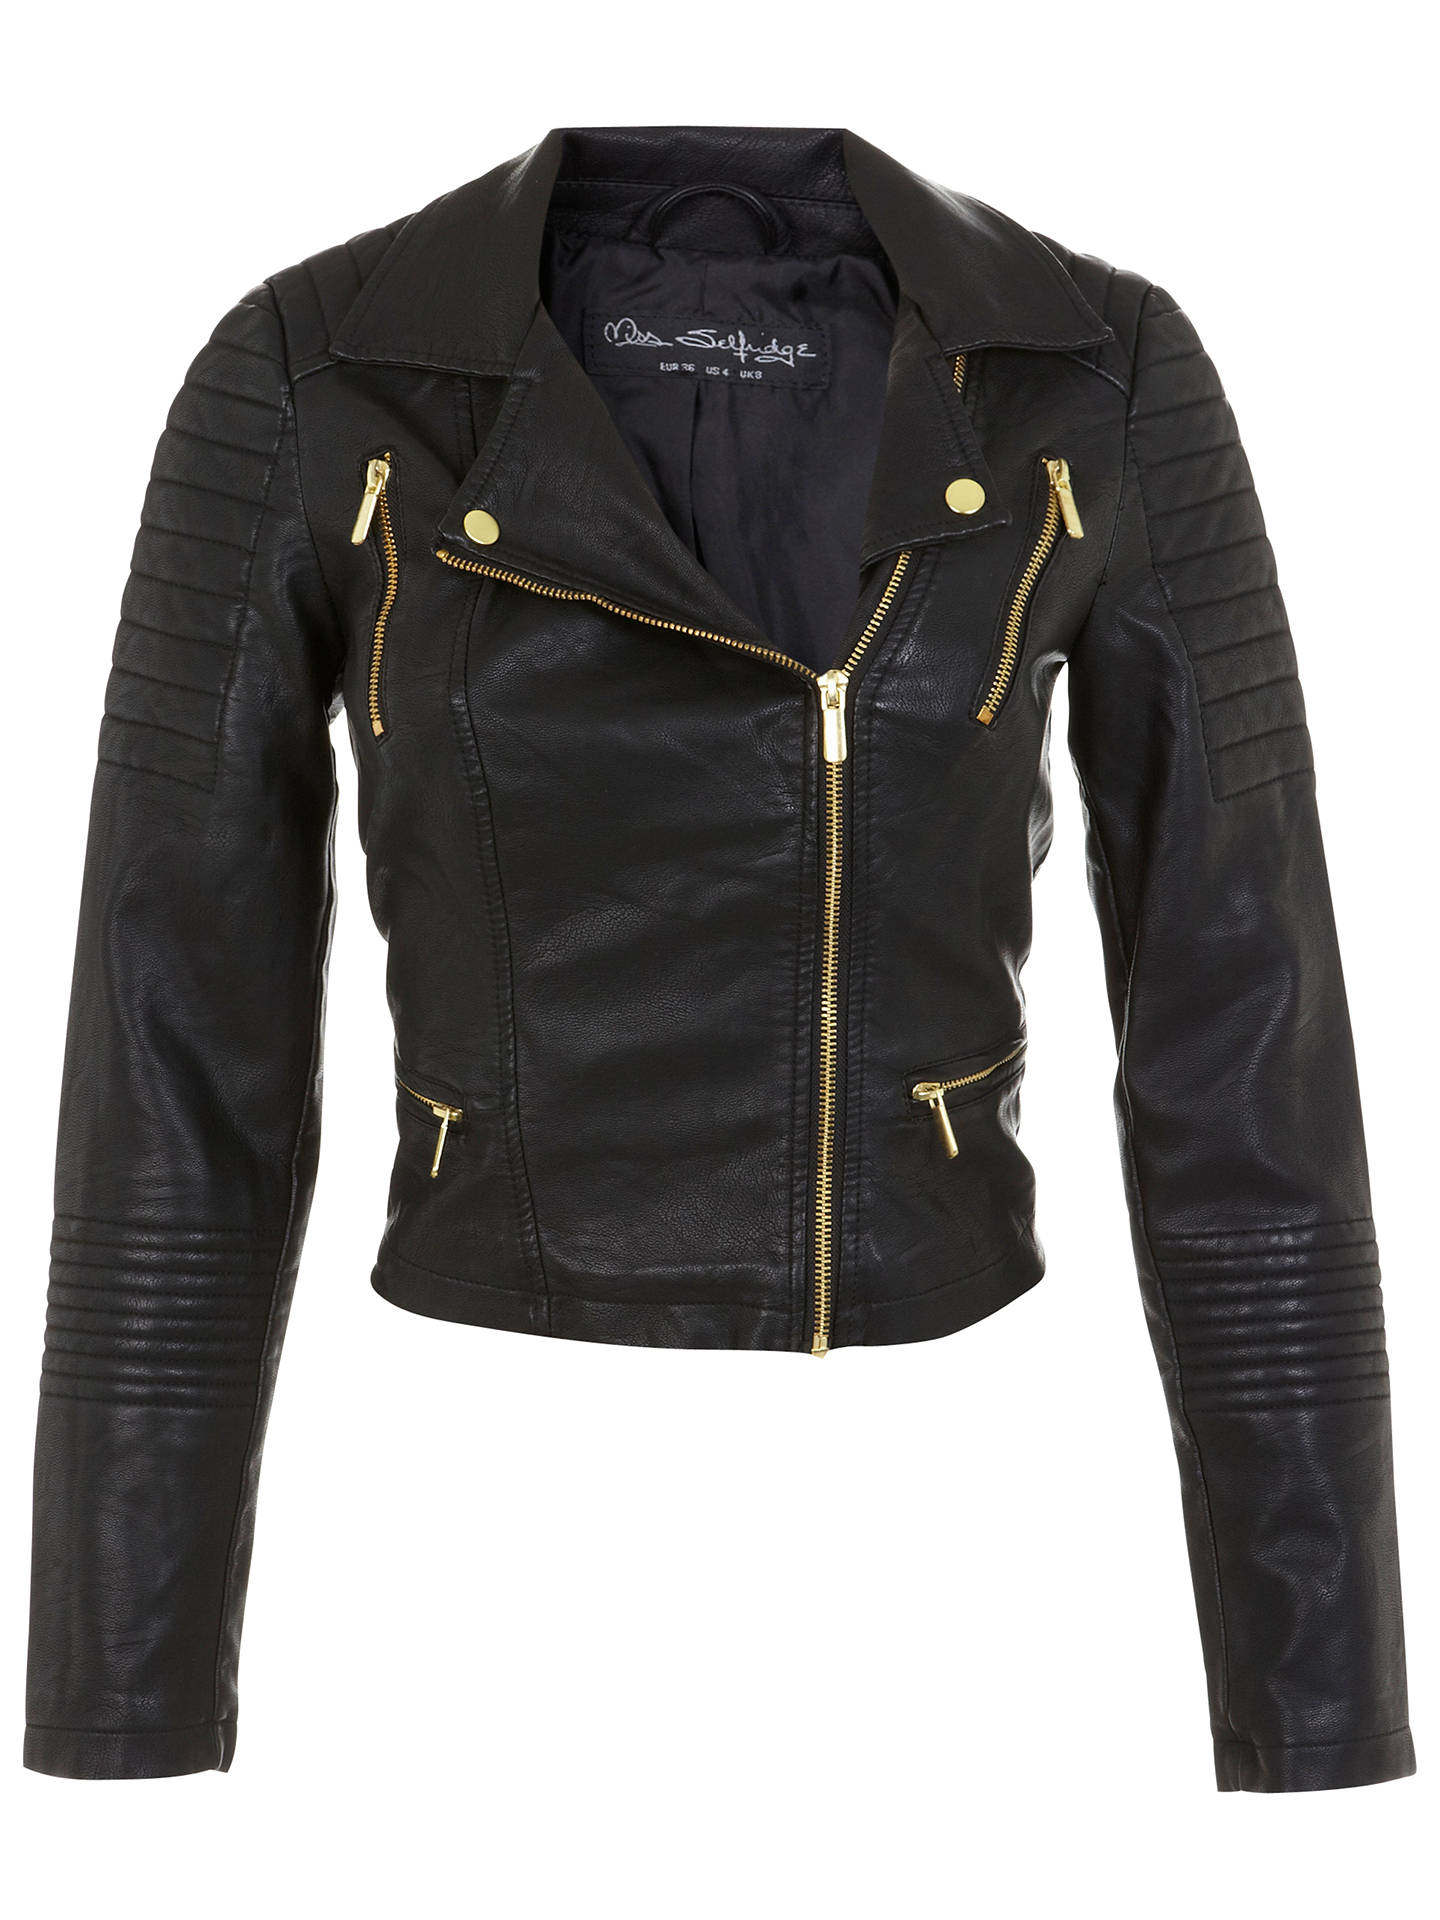 66c634d3b Miss Selfridge Crop Faux Leather Biker Jacket, Black at John Lewis ...